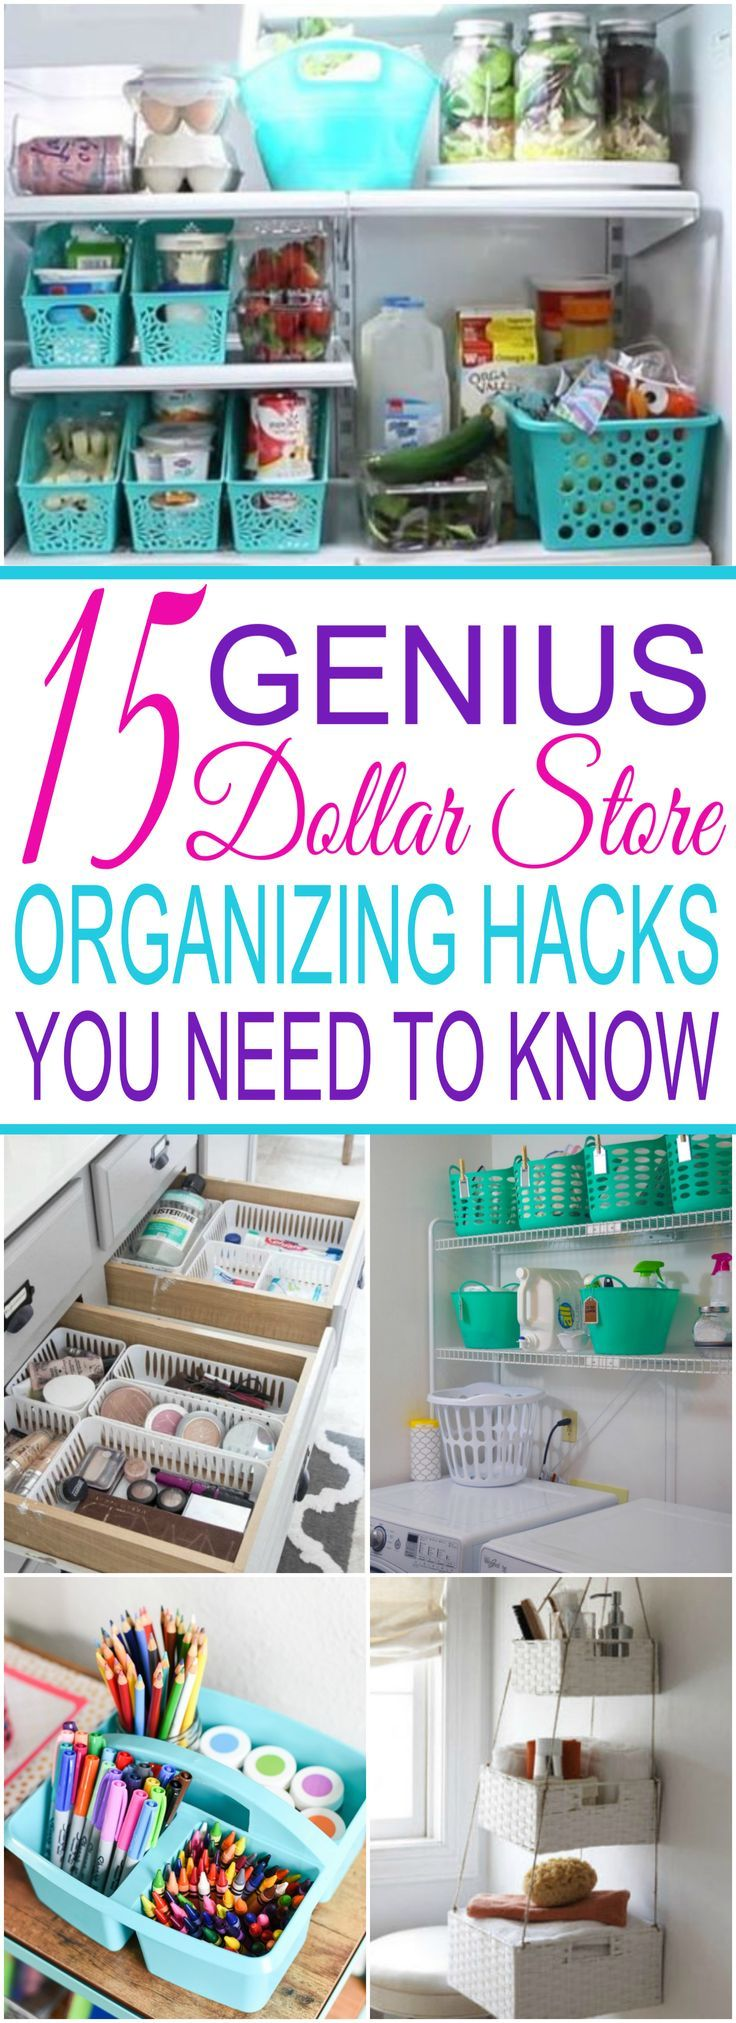 15 Dollar Store Organization Ideas For Every Area In Your Home images